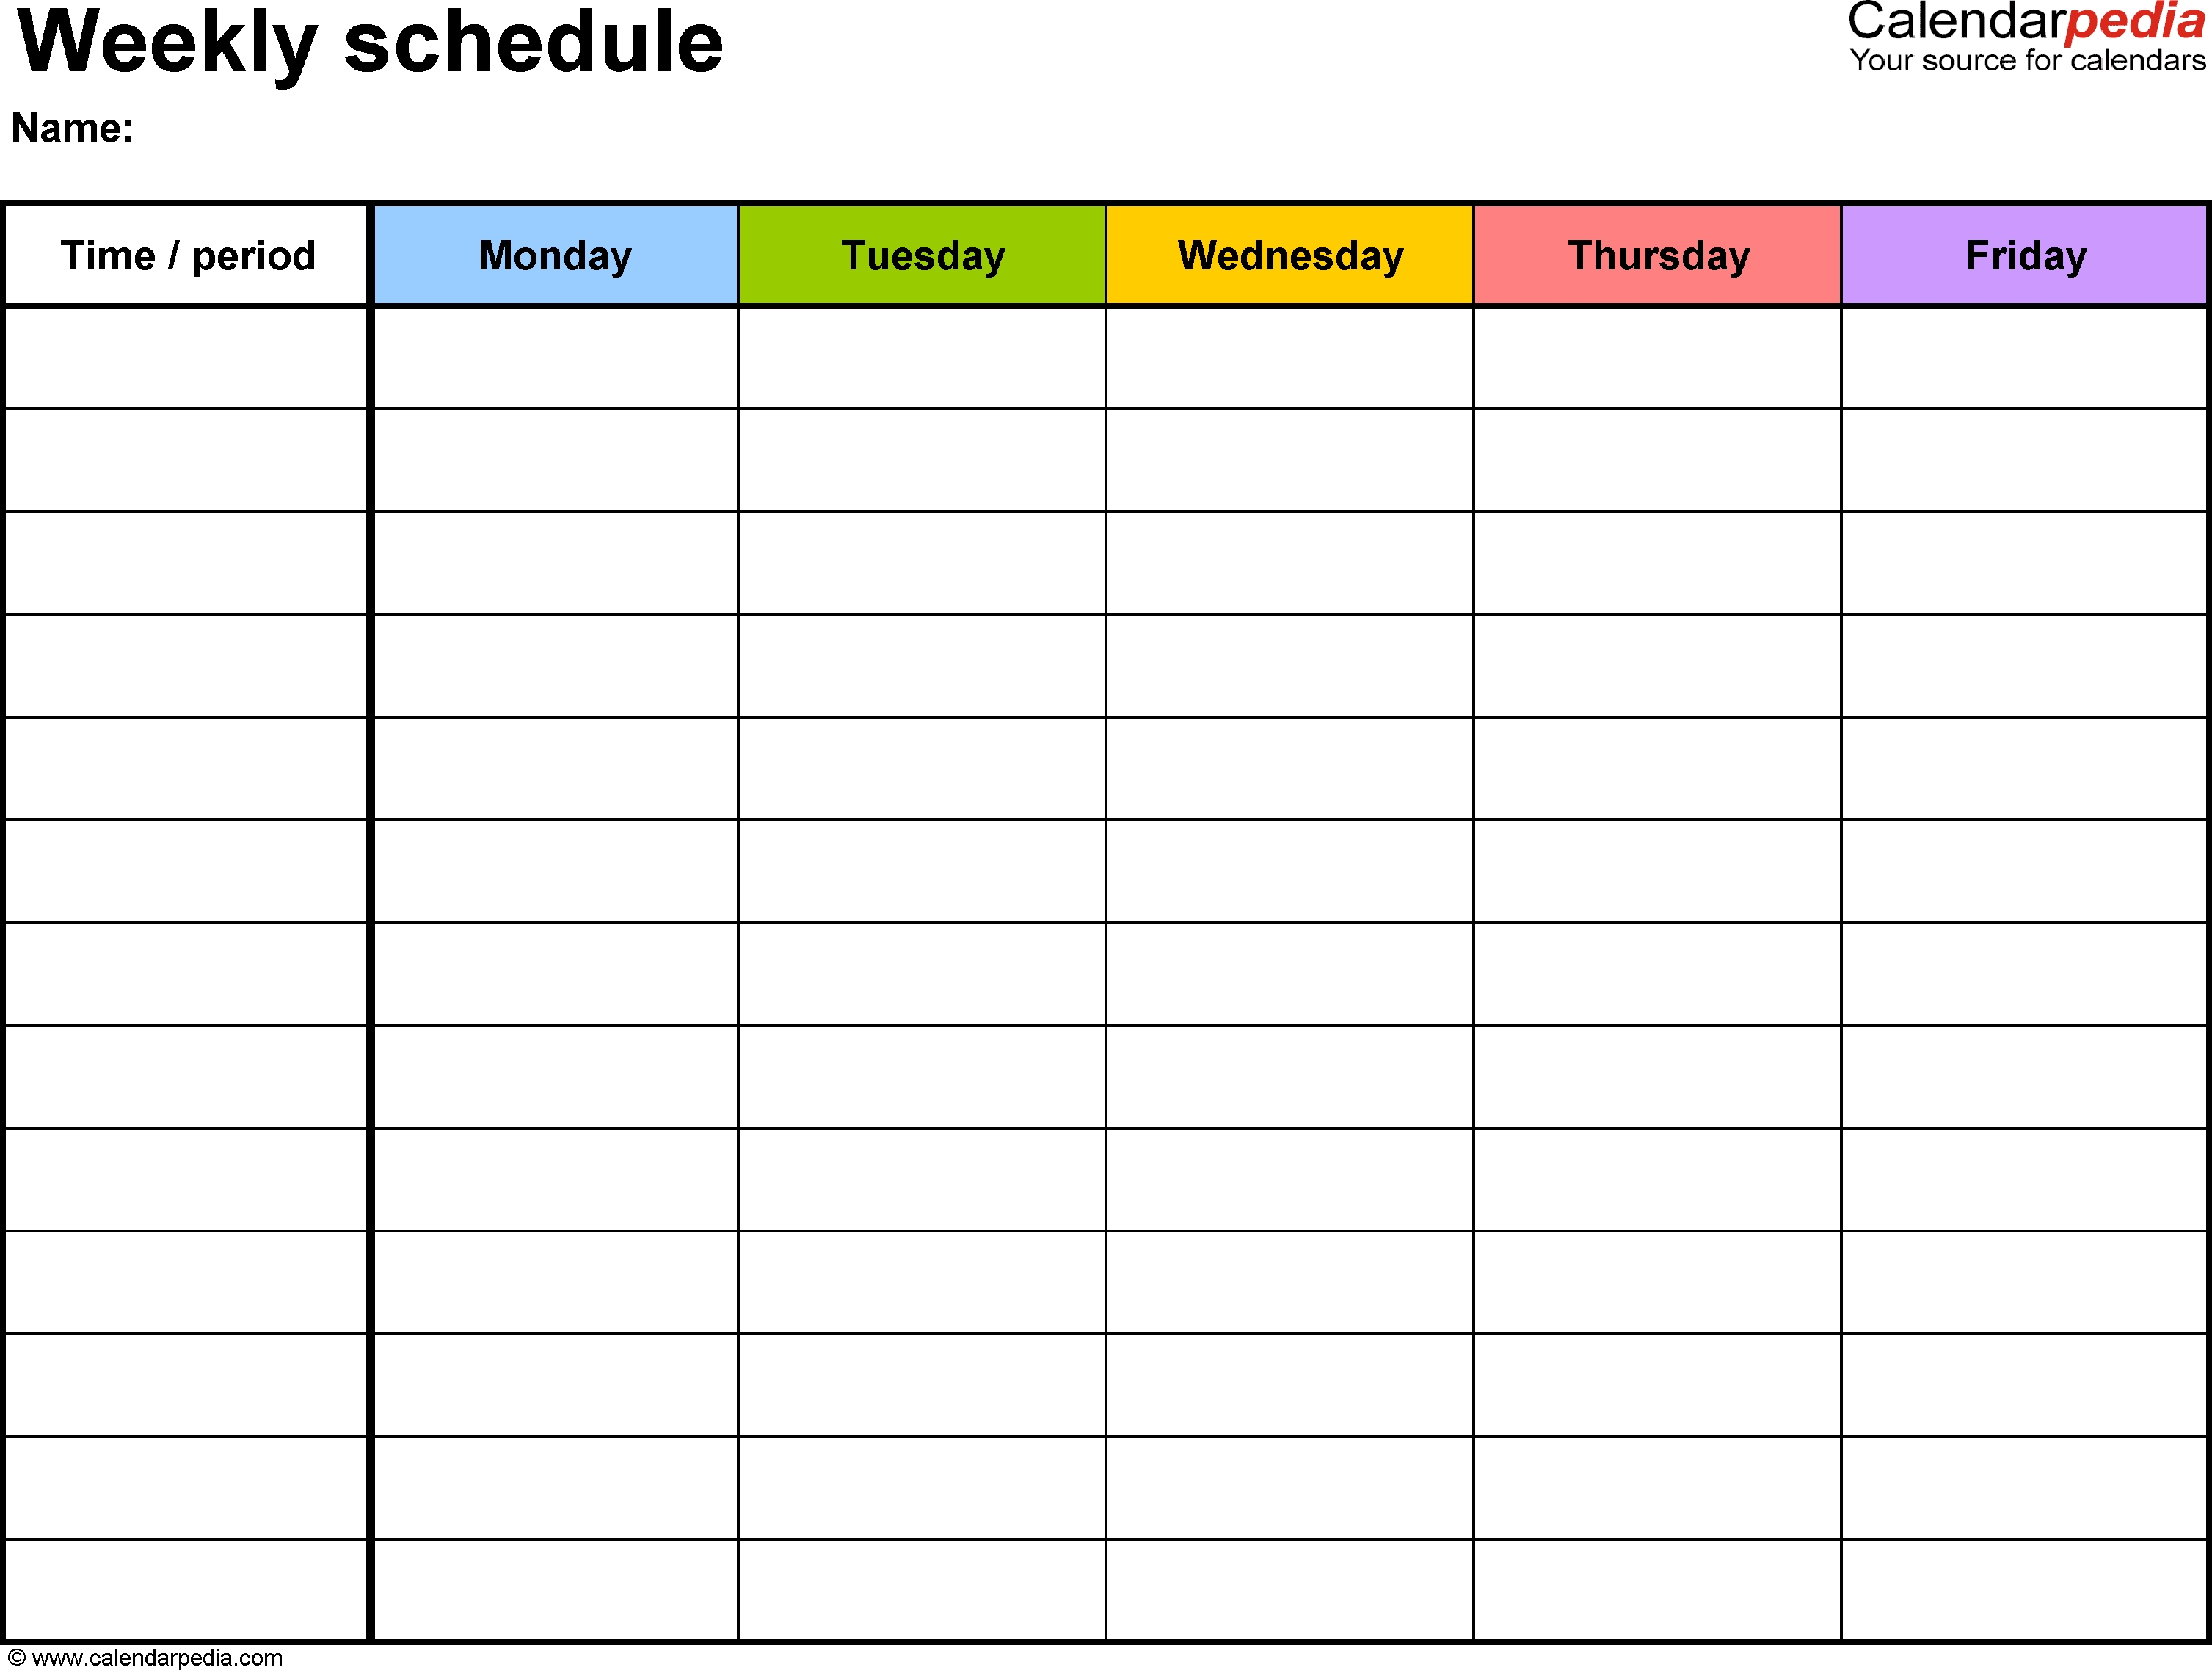 Free Weekly Schedule Templates For Word - 18 Templates-Blank Time Slot Week Schedules